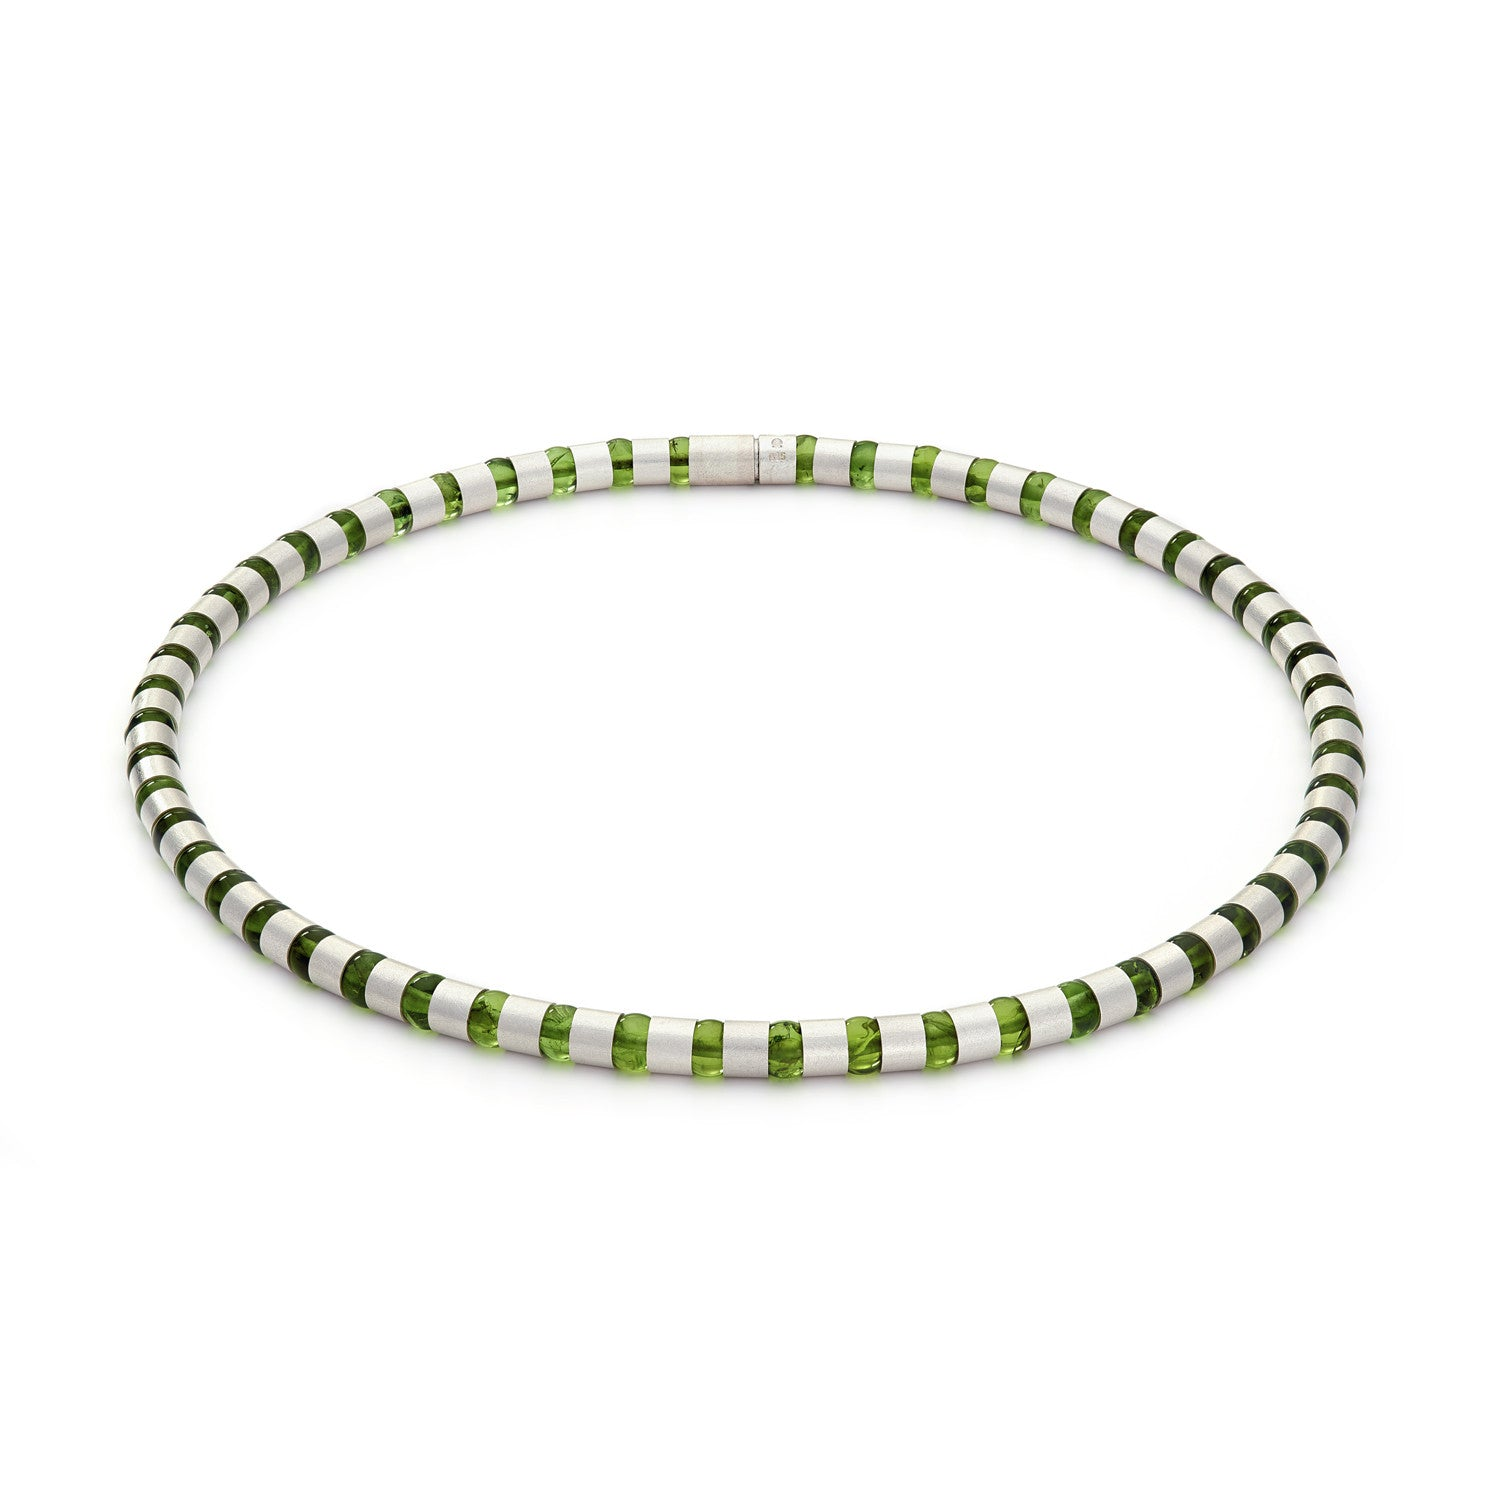 Cleopatra Silver Collier~6mm Peridot